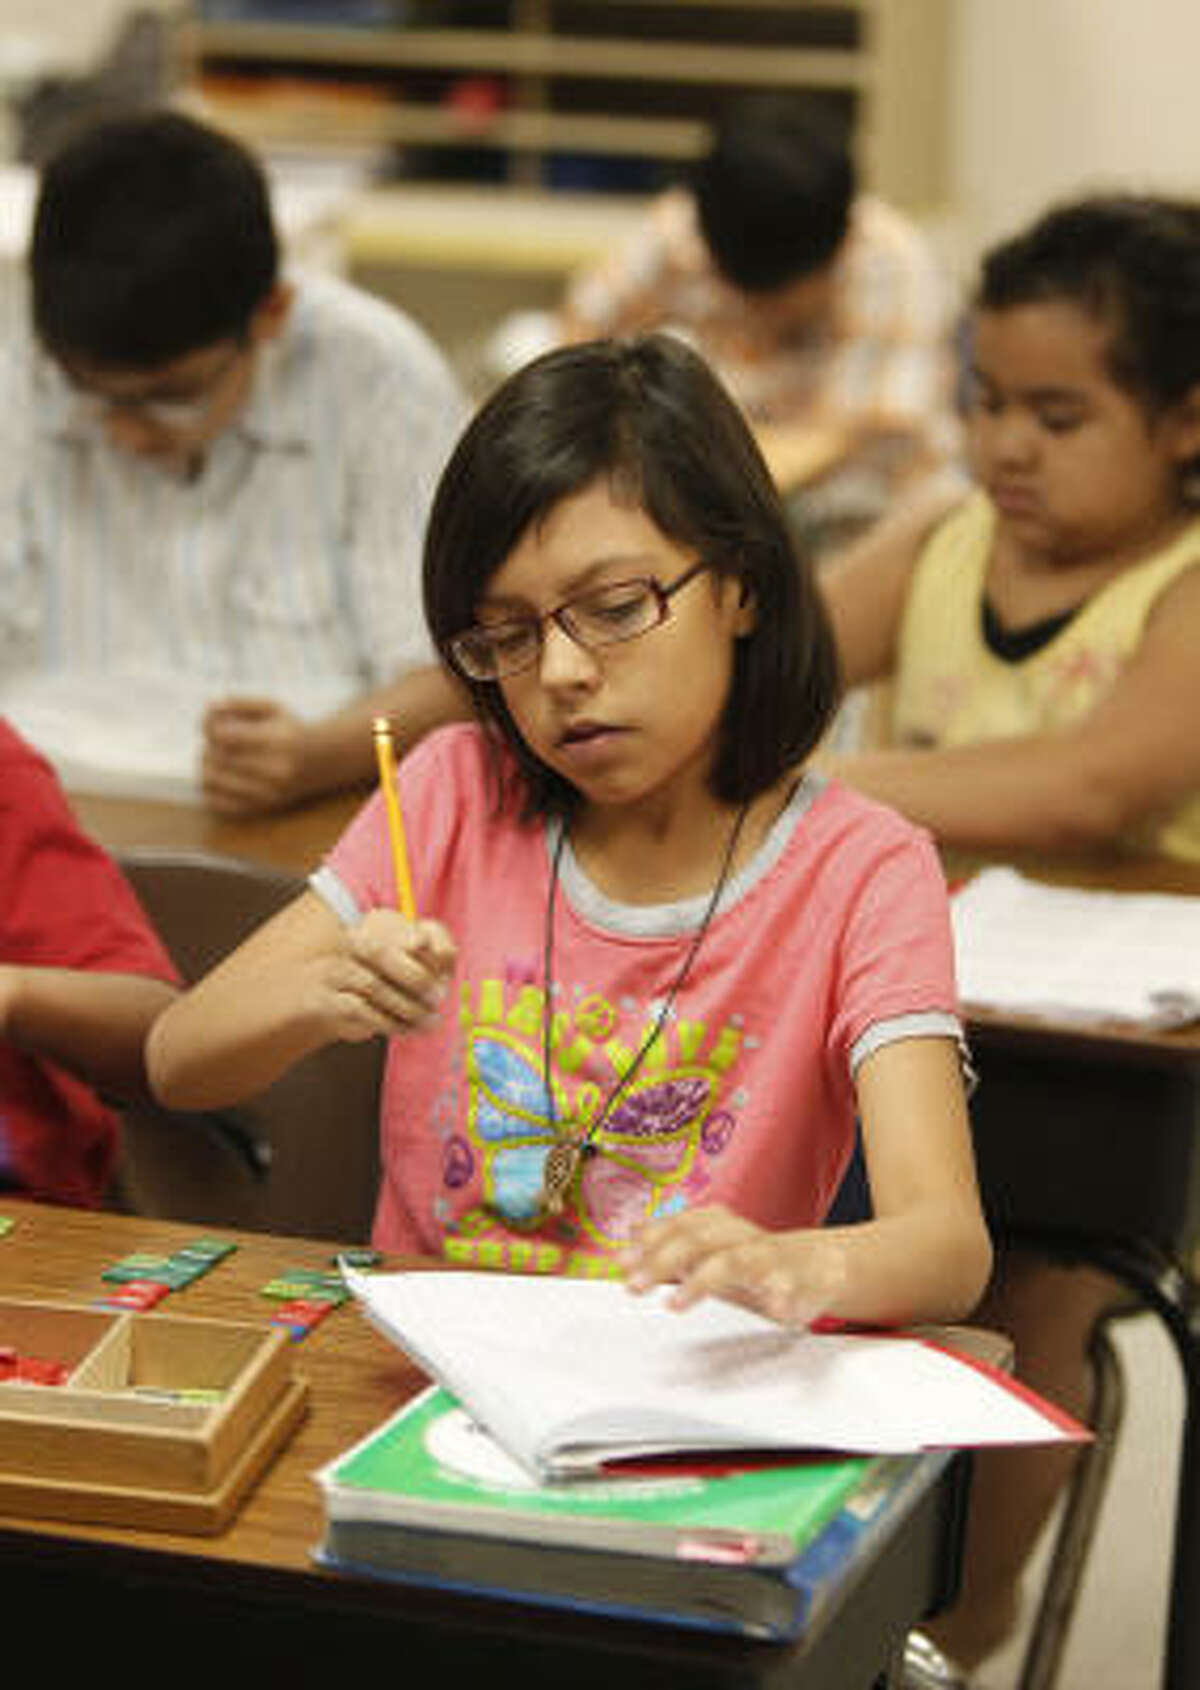 Yamilet Hernandez, 9, tends to her studies recently at Alief Montessori Community School, which is rated among the 10 best elementary schools in the area.